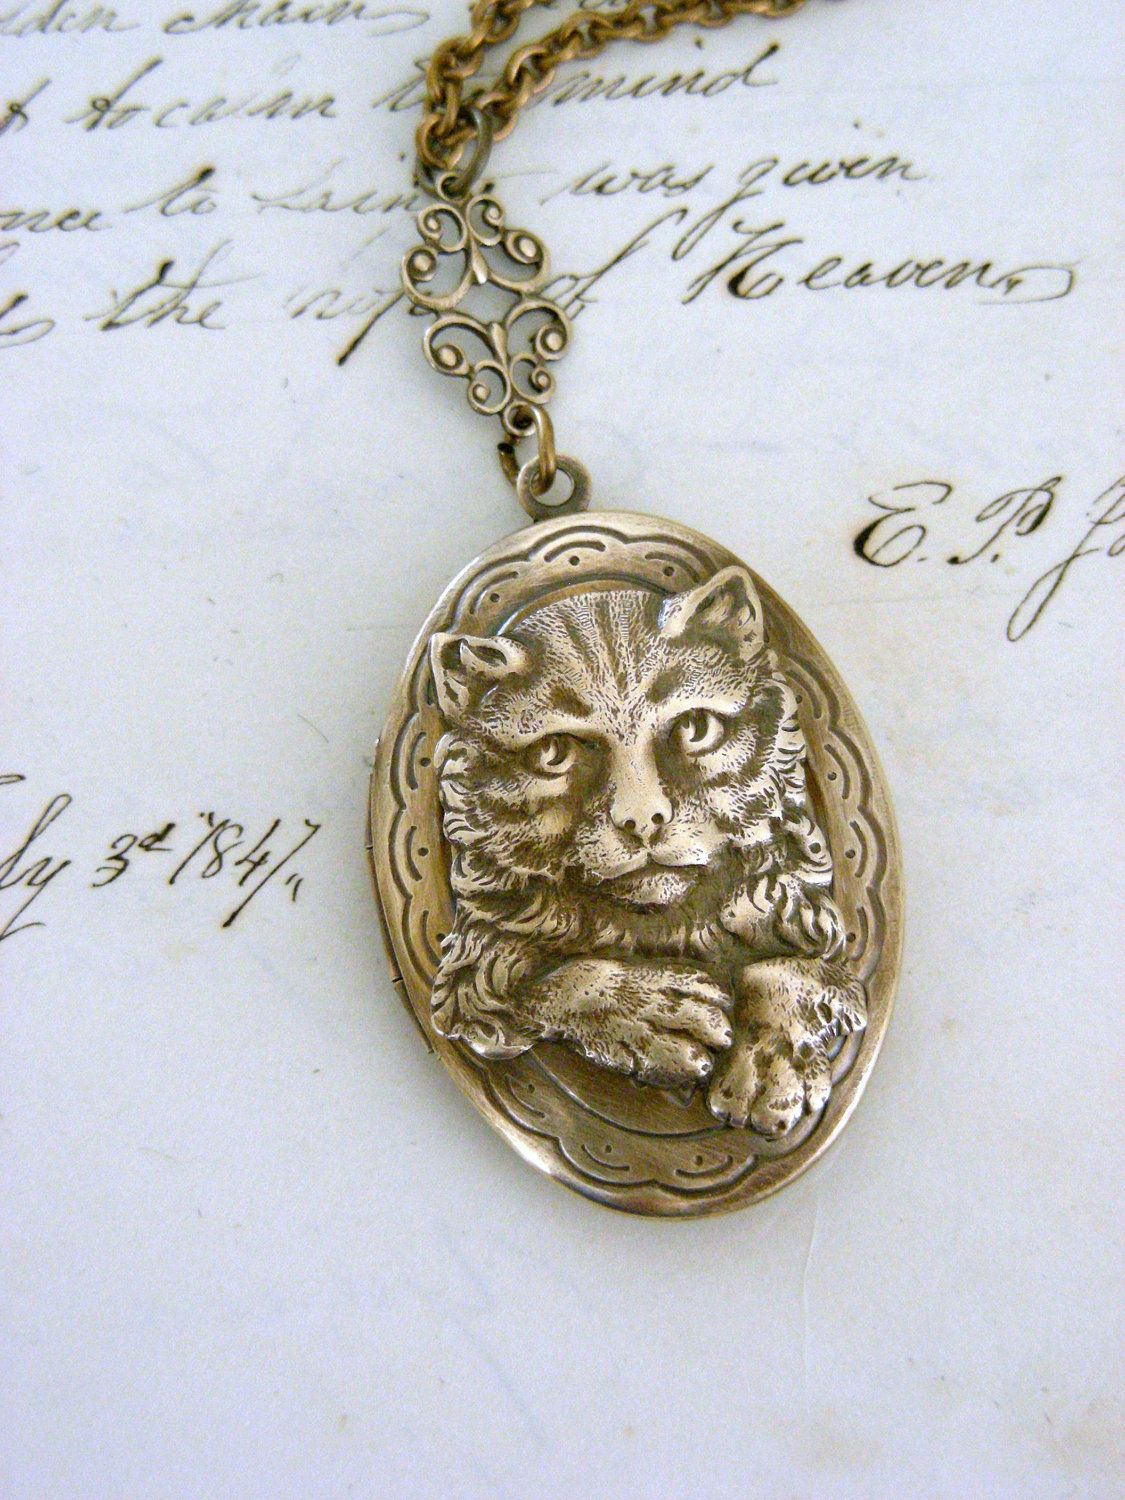 Locket Kitty Cat Necklace Retro Vintage Locket Handmade Brass Necklace. $35.00, via Etsy.